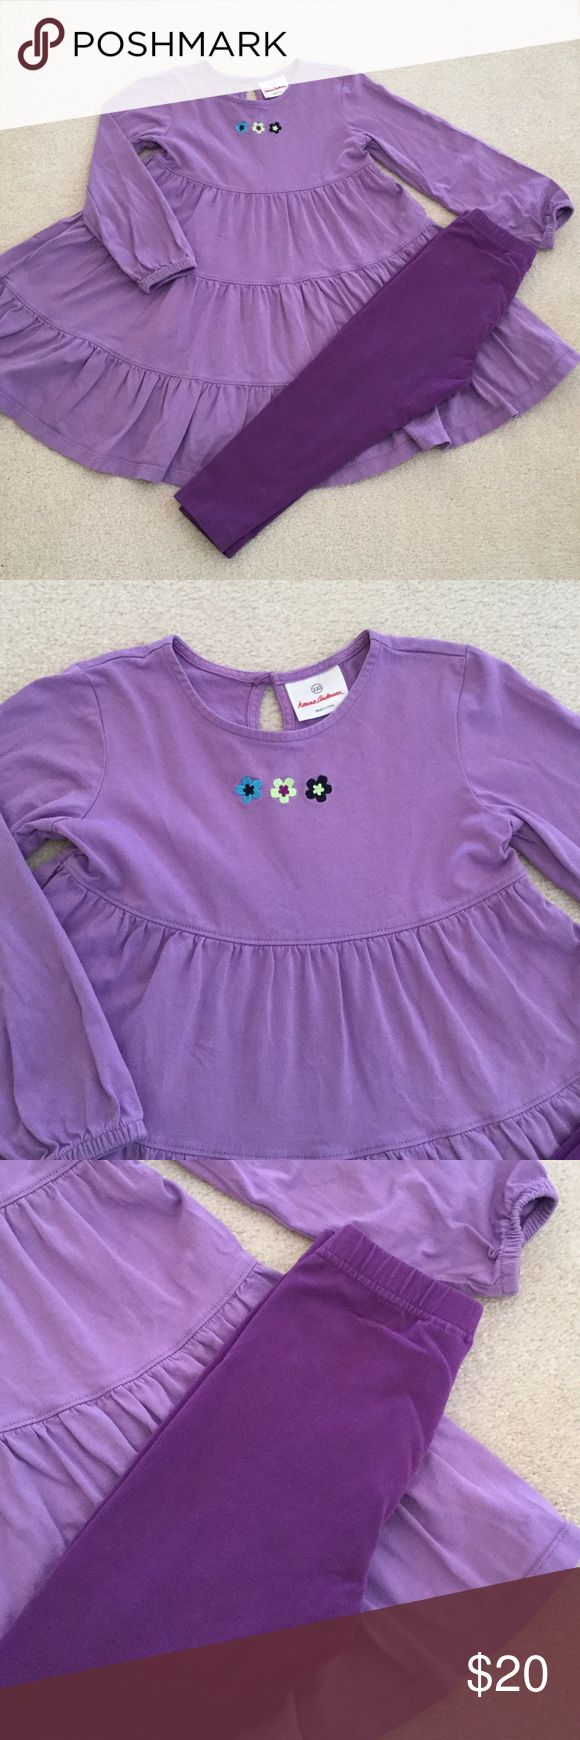 Hanna Anderson outfit 110 Dress 110 GUC! leggings 100(us 4T)  but, worn together. Fit like capri length. No stains or rips. Both Fits like 4-5T Hanna Andersson Matching Sets